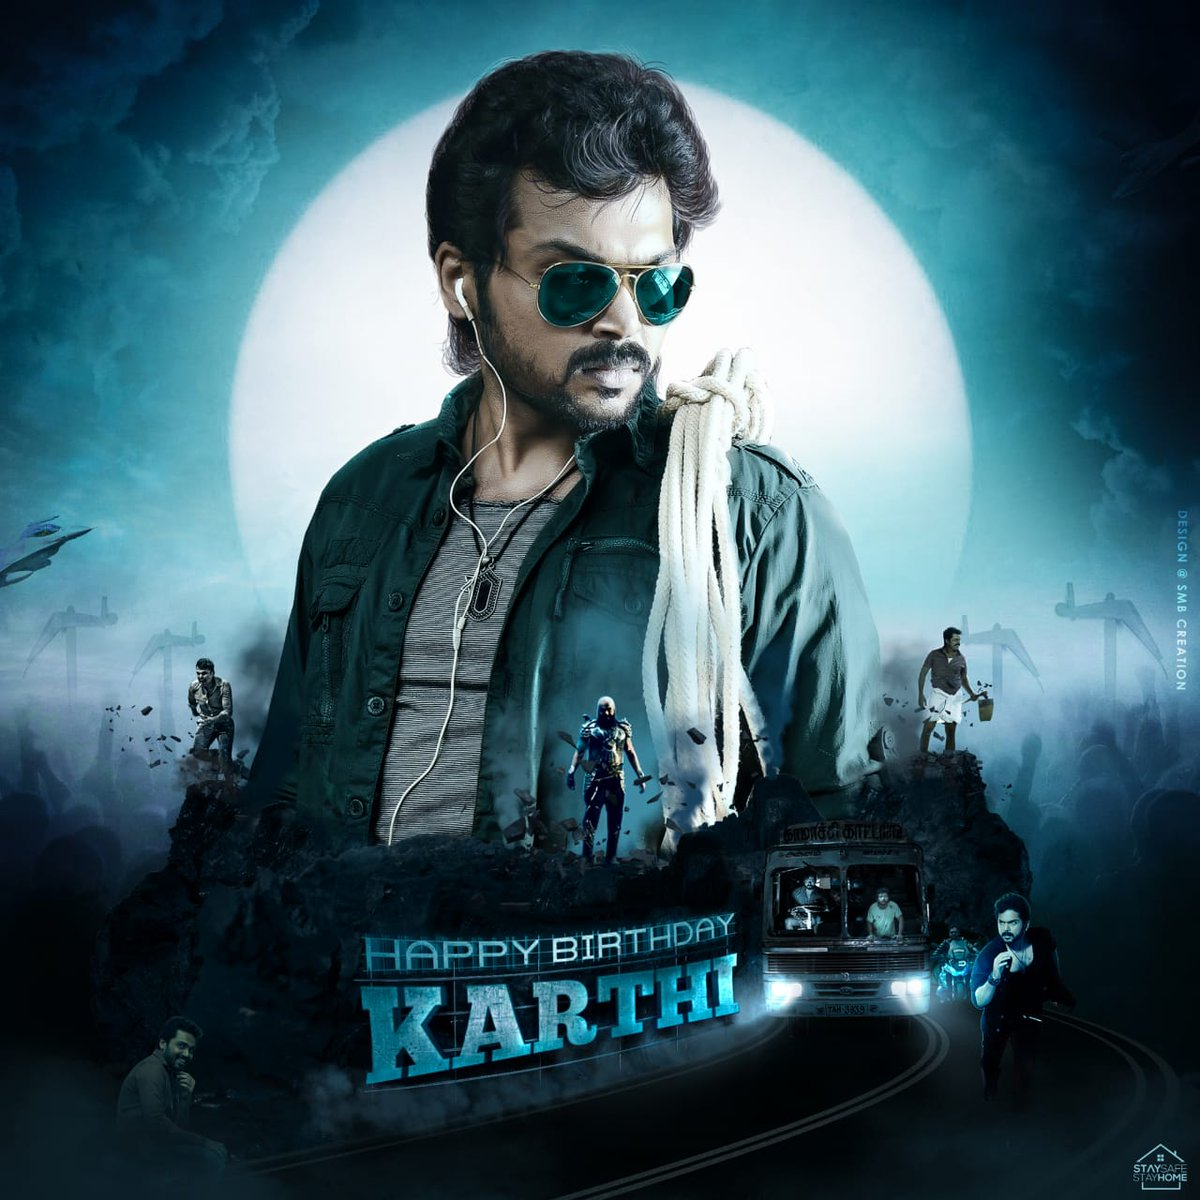 Here's the CDP to Trend the celebrations of Hero @Karthi_Offl's Birthday tomorrow   #HappyBirthdayKarthi